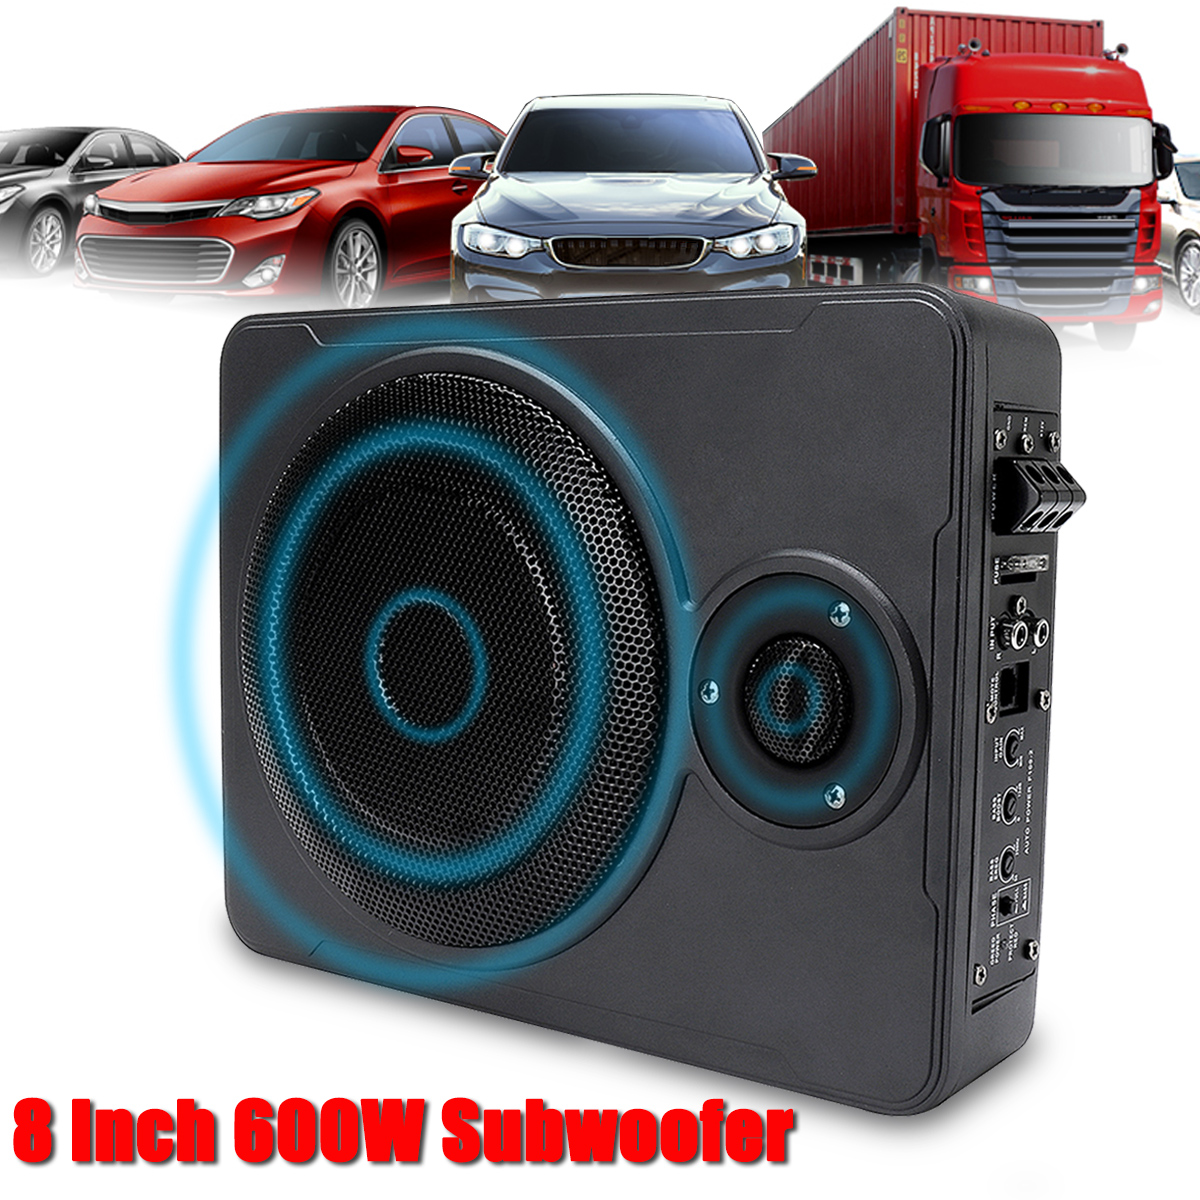 8 Inch Car Home Subwoofer Under Seat Sub 600W Stereo Subwoofer Car